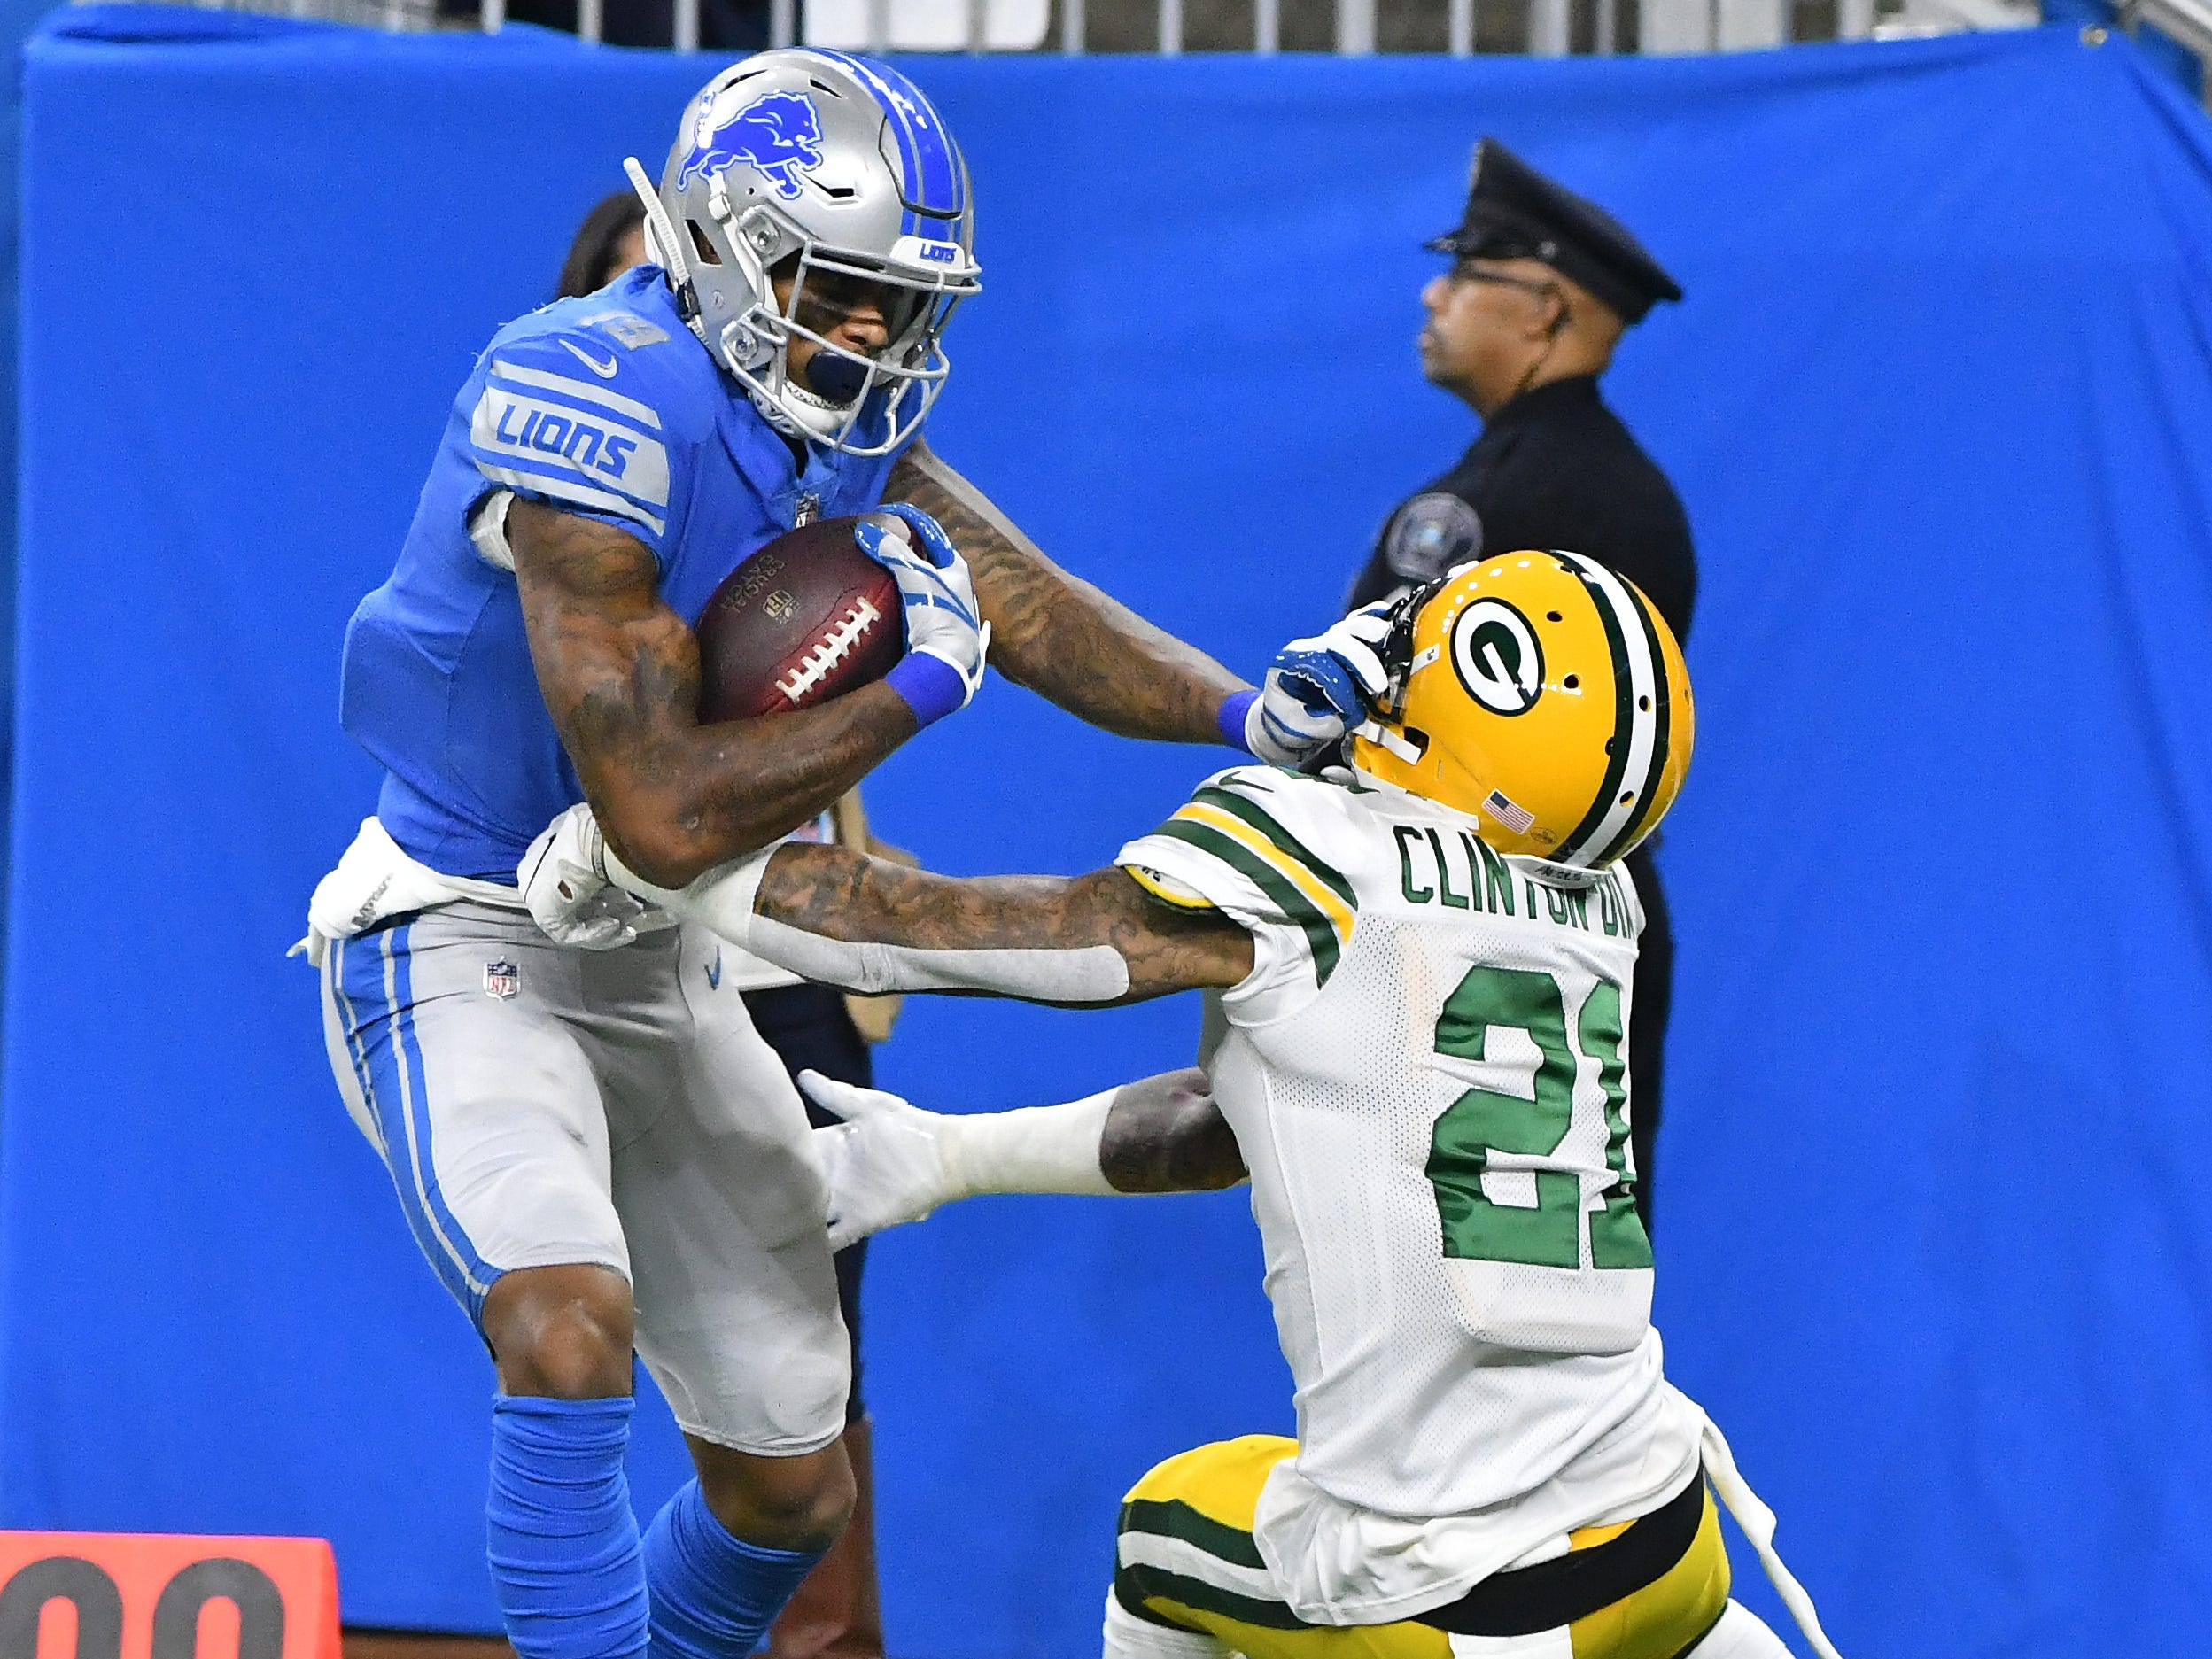 WR Kenny Golladay: Golladay has been the Lions' best receiver, making significant improvements to multiple facets of his game. He's the team's best perimeter blocker, has showed cleaner route running, at all depth levels, and has displayed strong hands, dropping just one pass. He's slumped a bit in recent weeks, facing some different coverage looks, but still has a strong shot of topping 1,000 yards if he stays healthy. Grade: A-